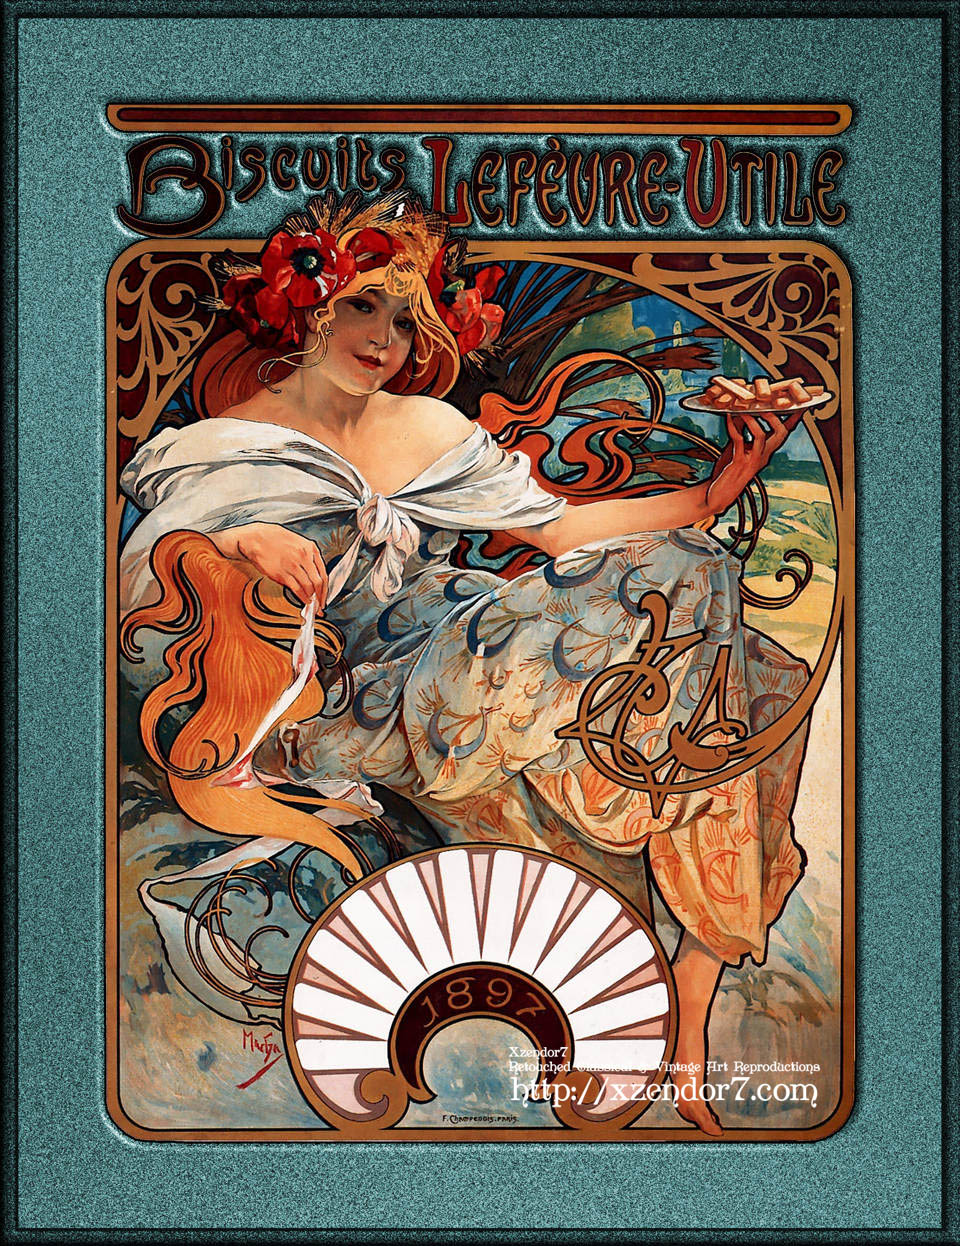 Alphonse Mucha Biscuits Lefevre-Utile Speckled Frame Version